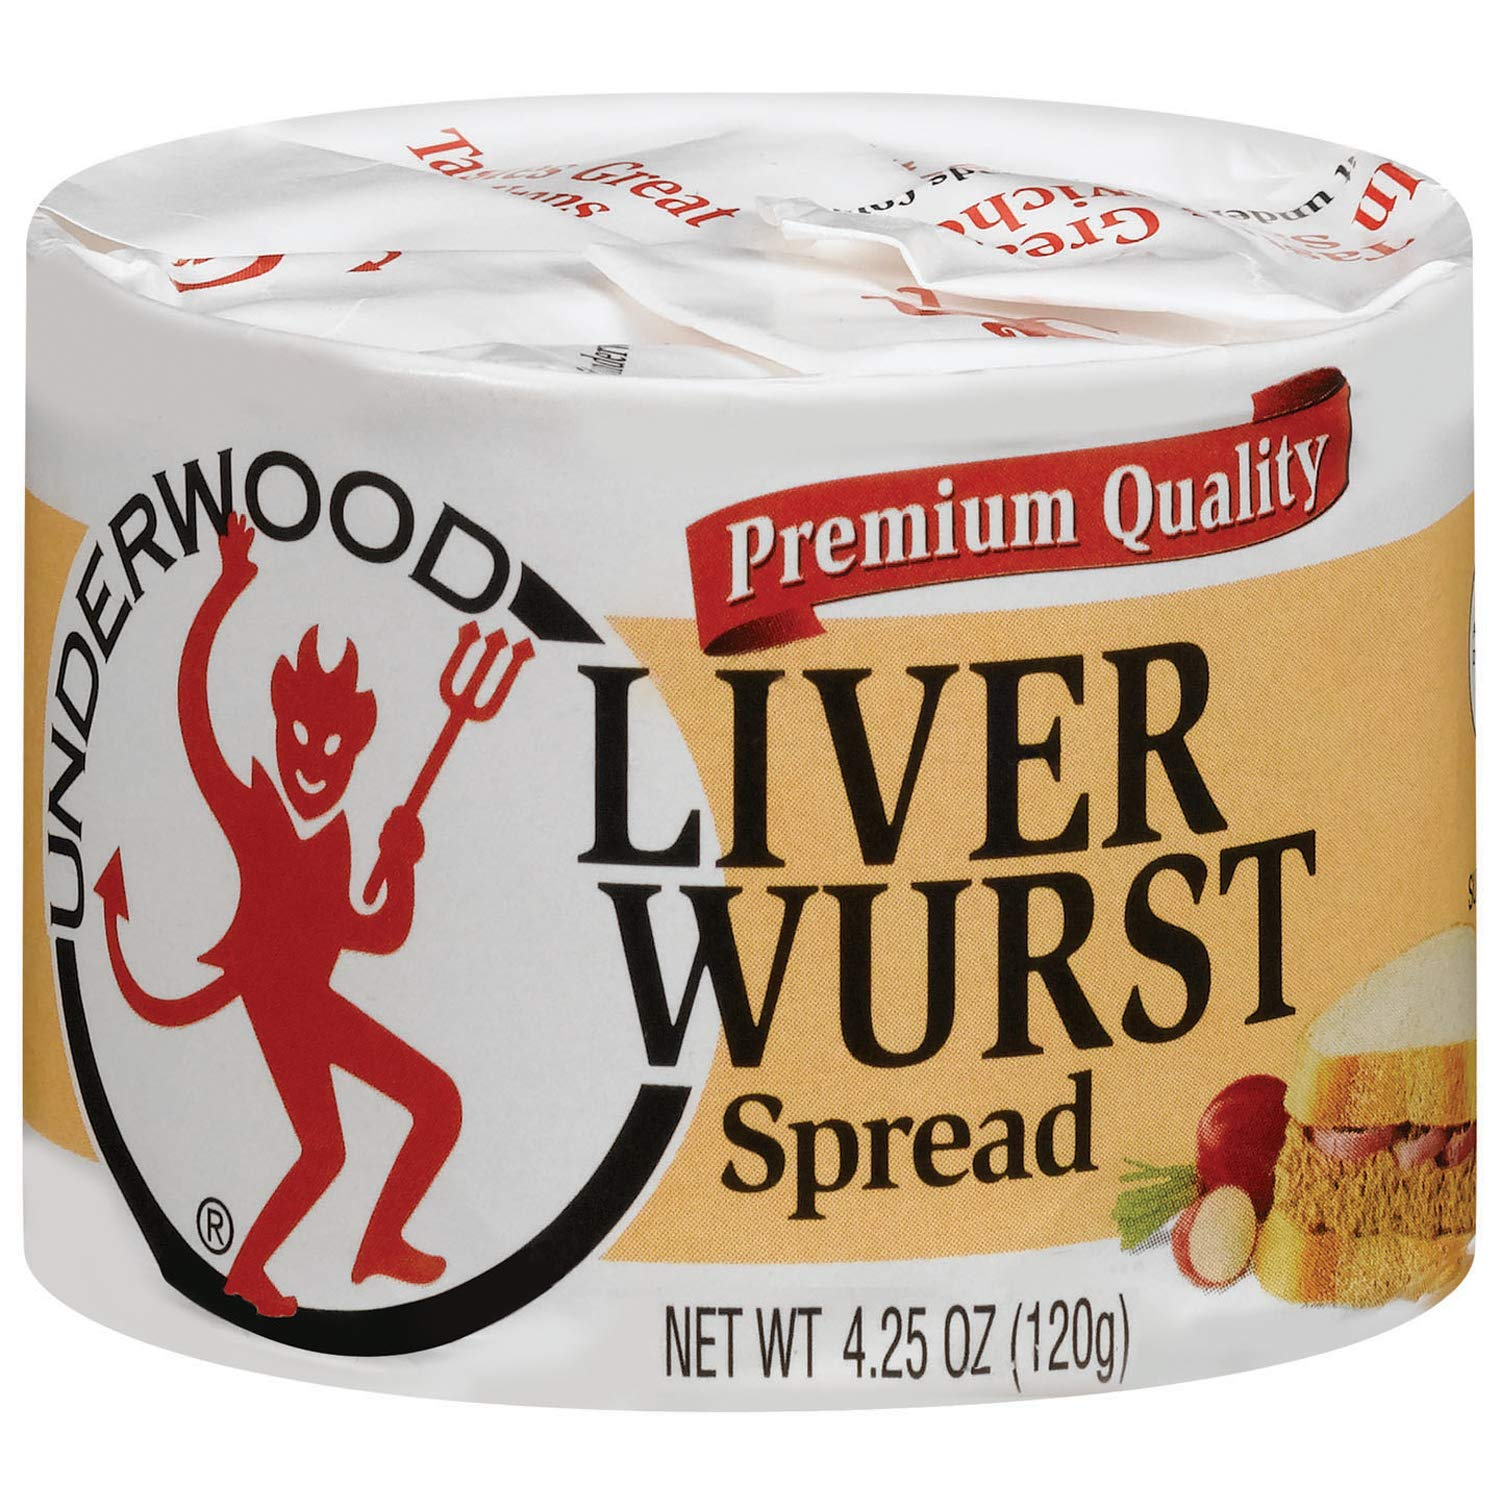 Underwood Liver Wurst Spread, 4.25 Ounce (Pack of 24)